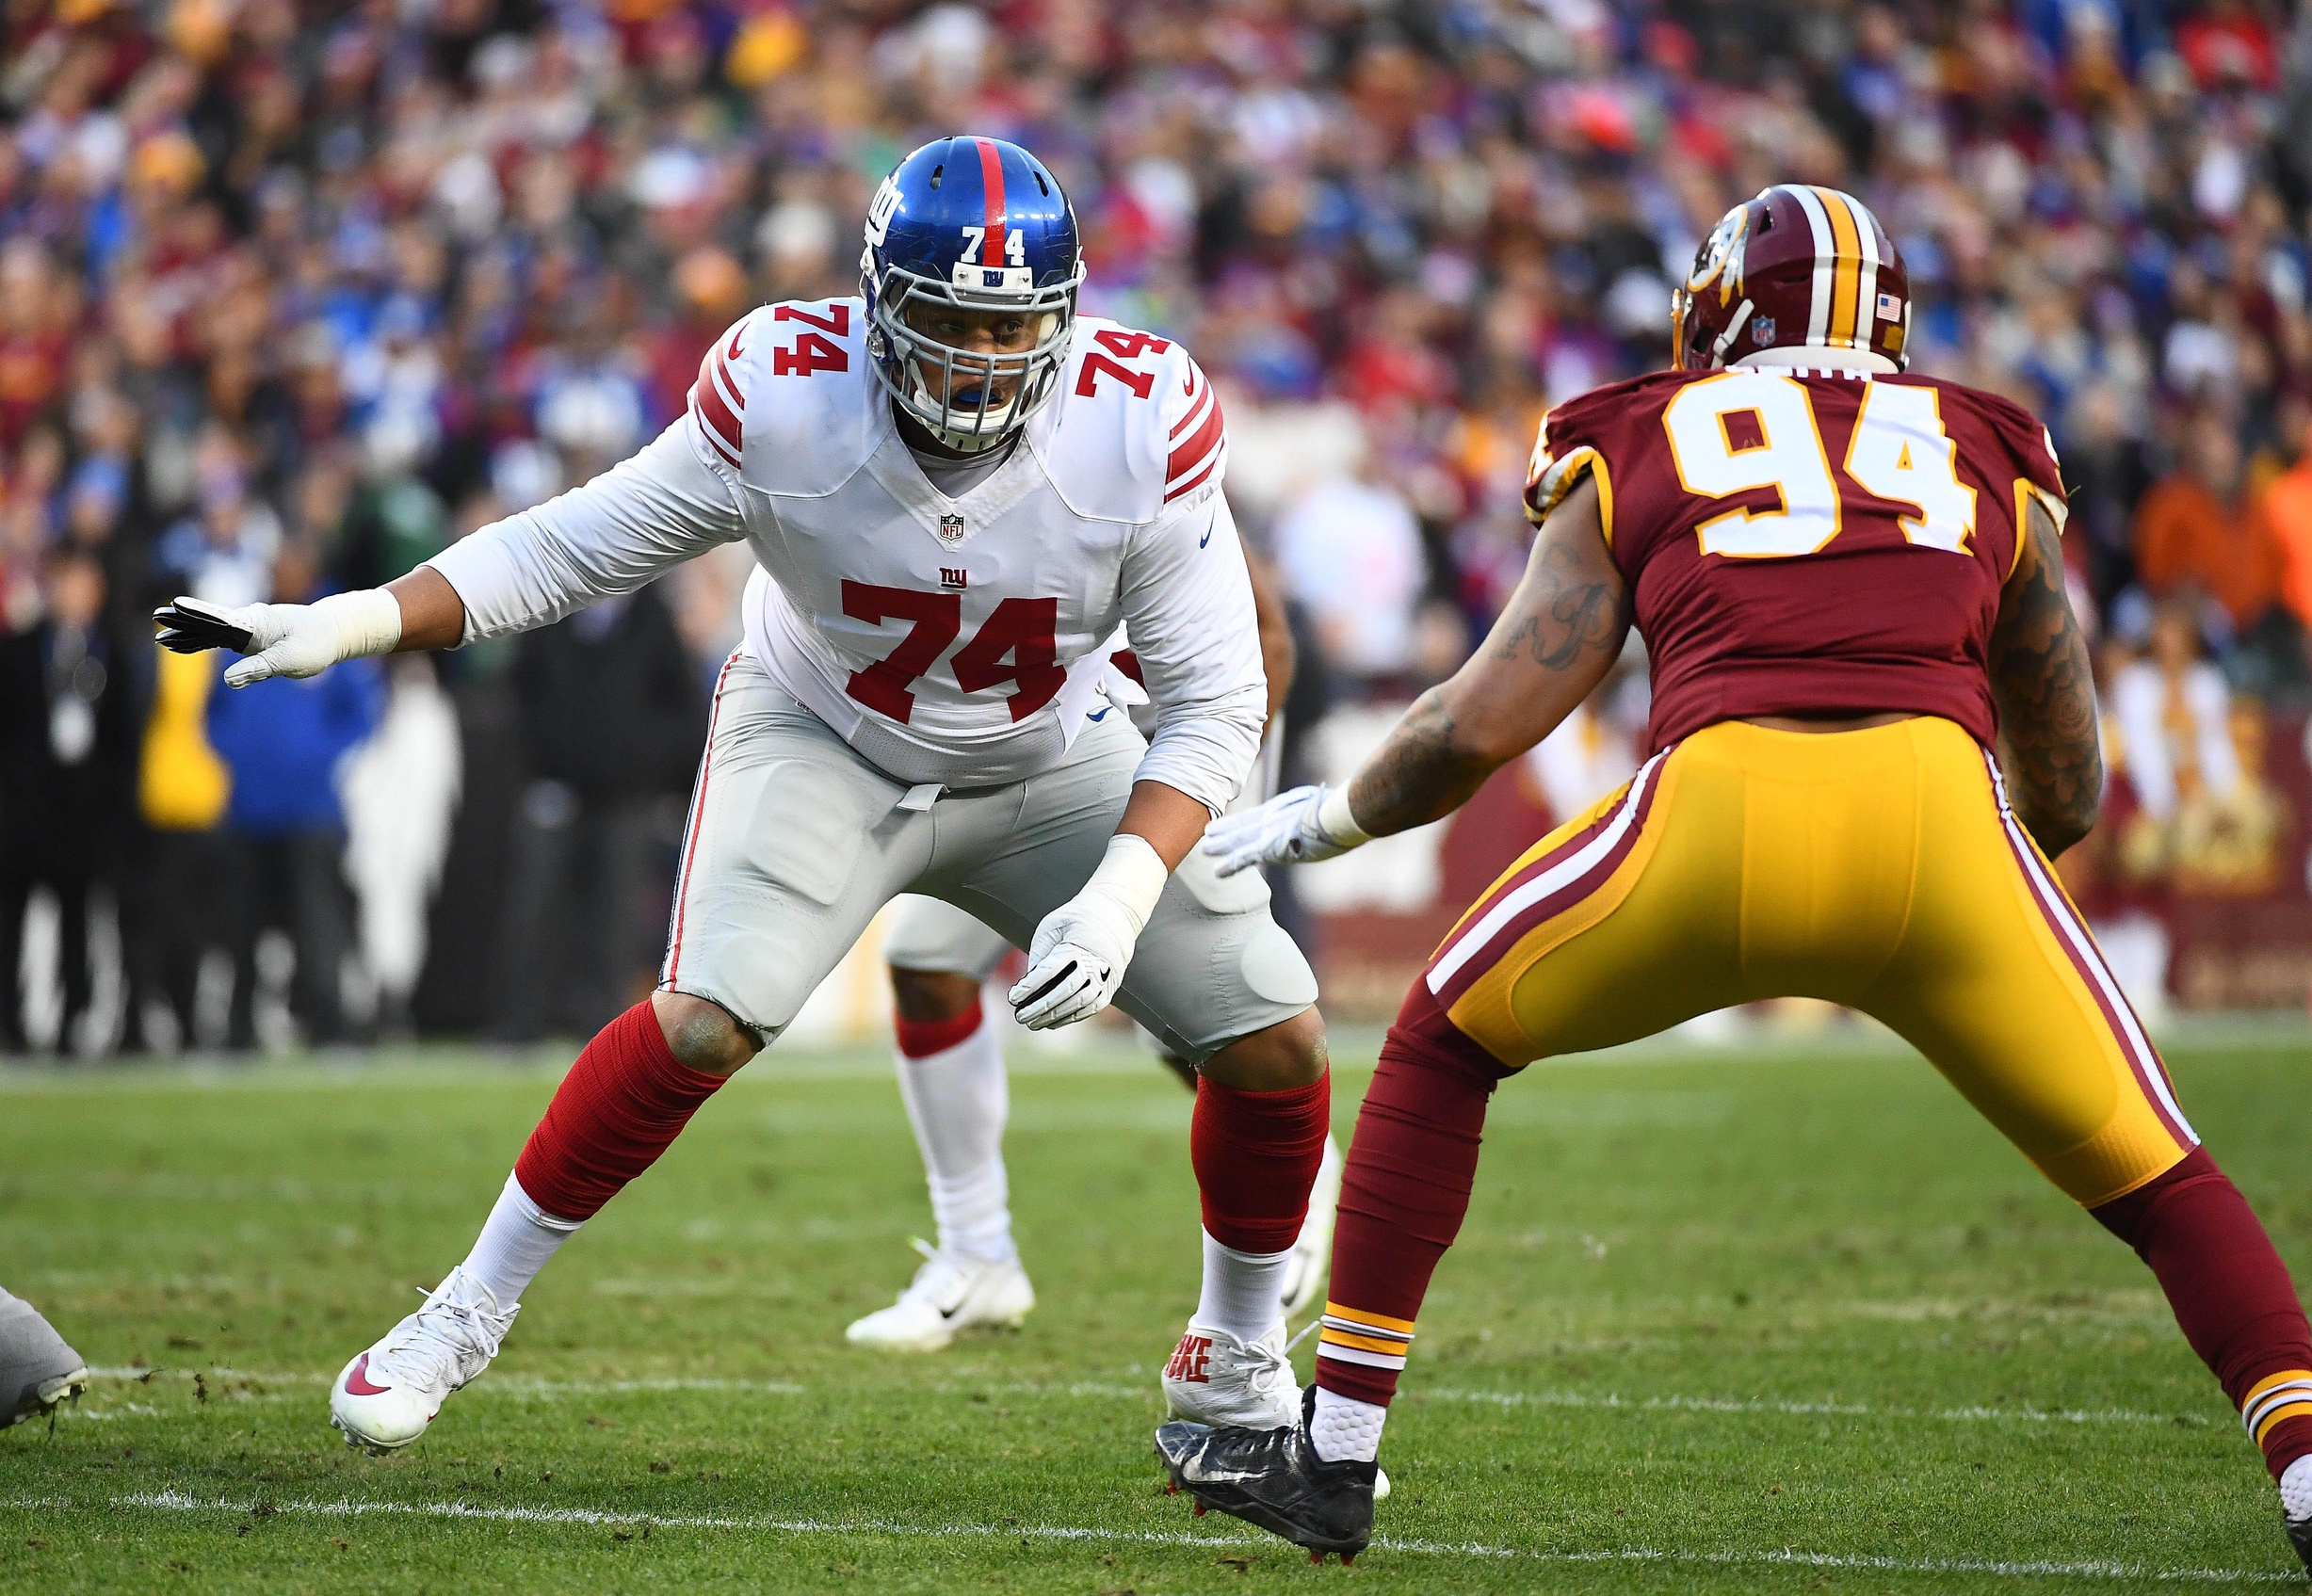 New York Giants place former first-round pick Ereck Flowers on waivers